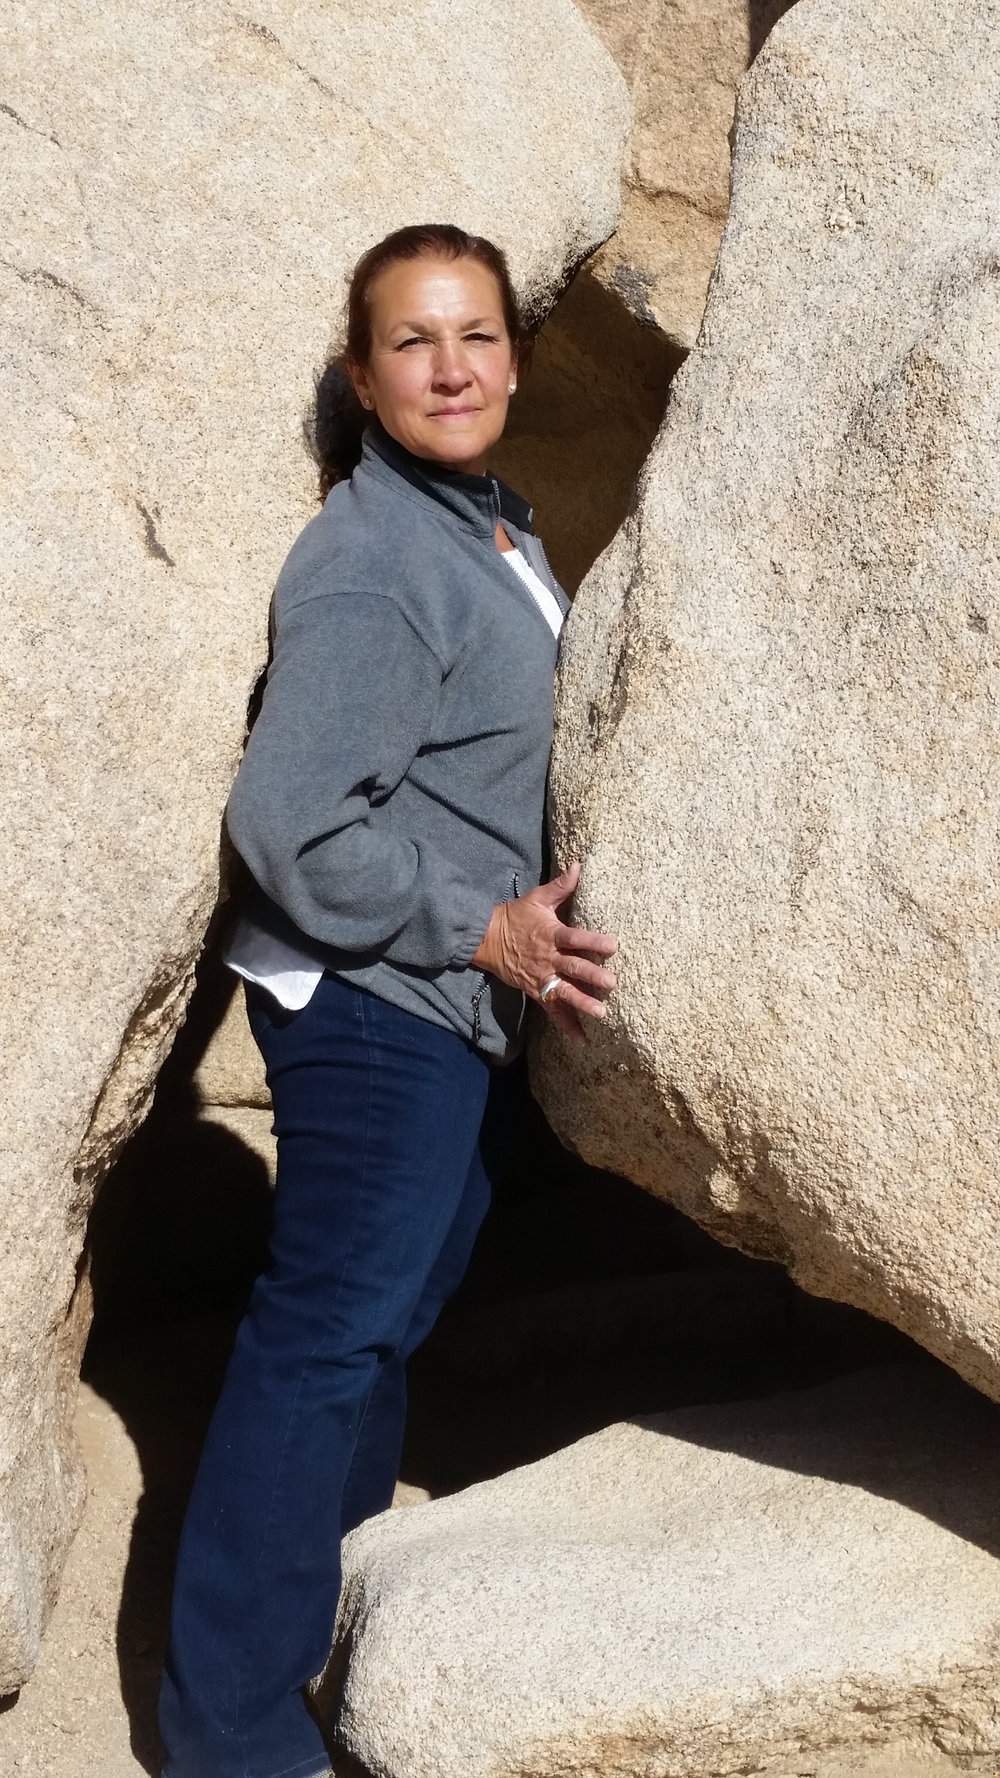 I was at Joshua Tree National Park today and had to go through a narrow passage.  Last year I would not have been able to do it. This year I had plenty of room. I feel very happy and blessed.